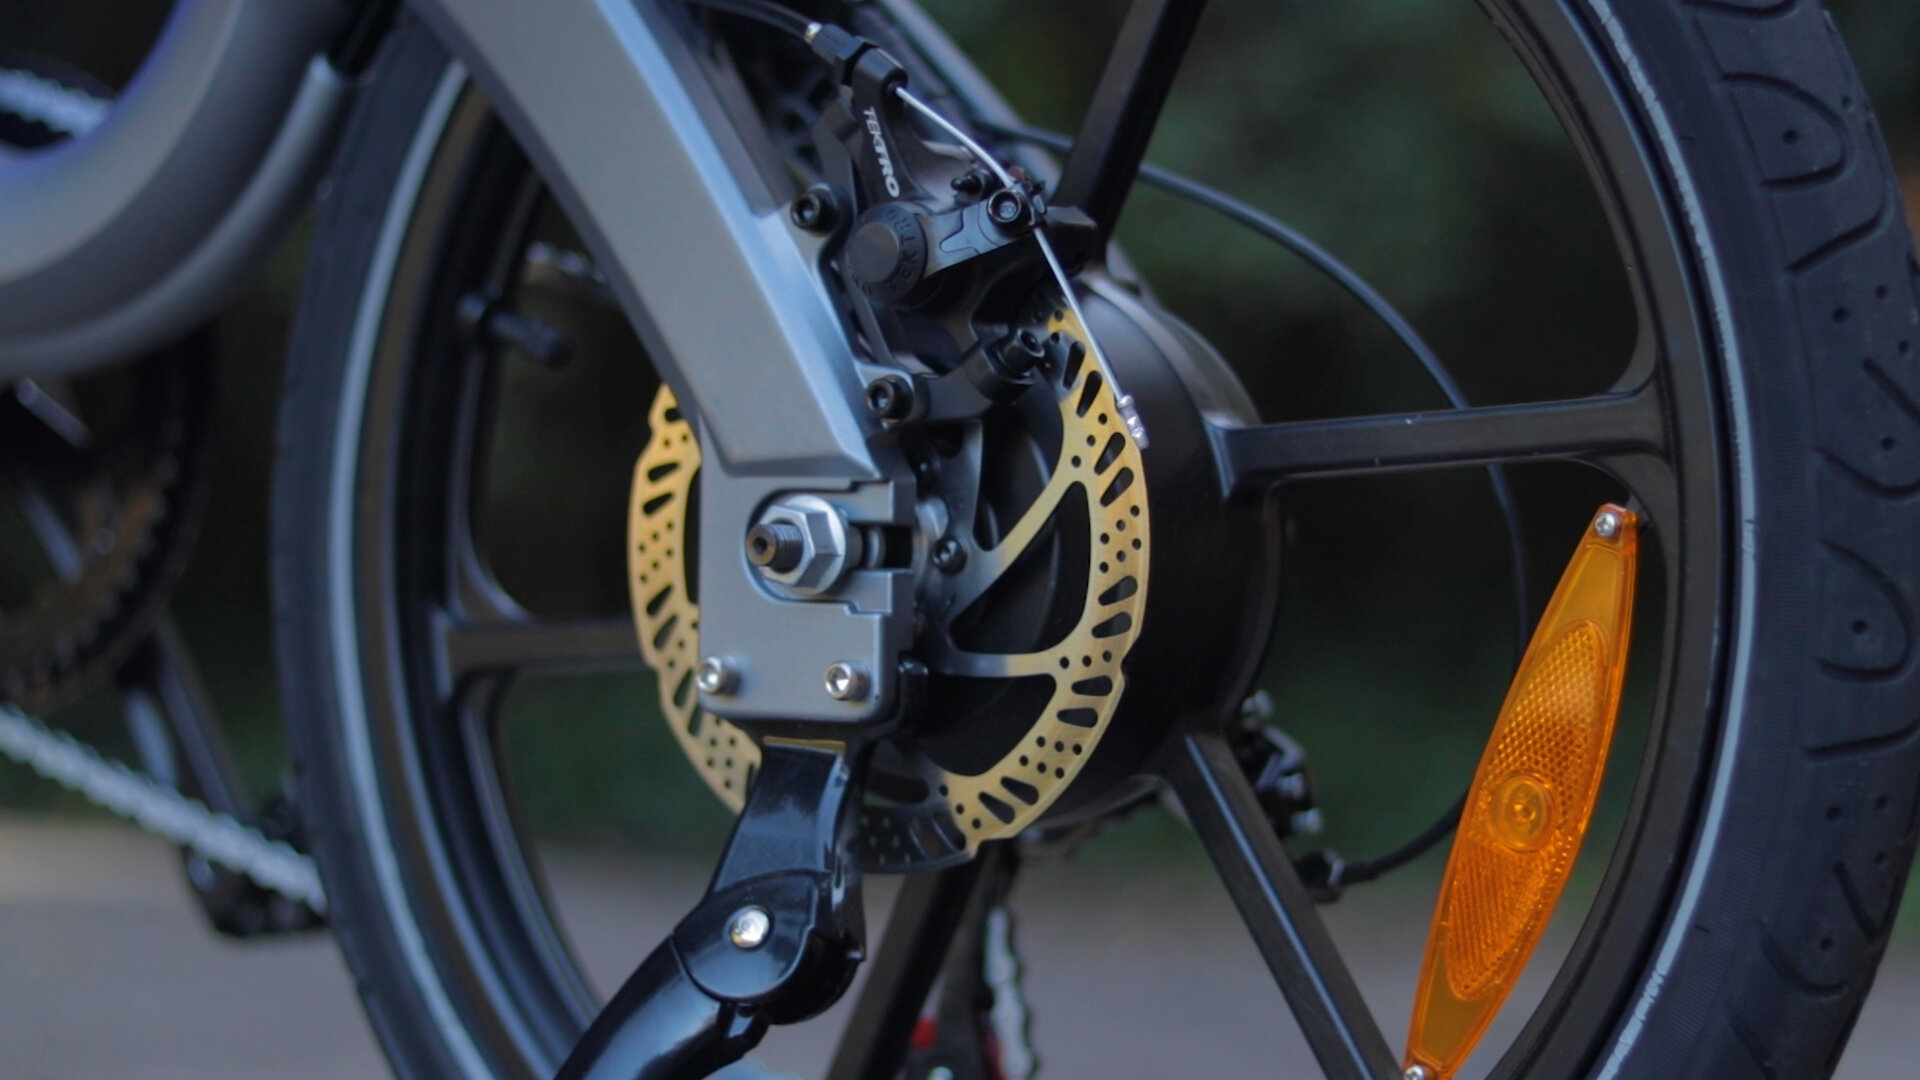 flowdot-electric-bike-review-2019-tektro-disc-brake.jpg